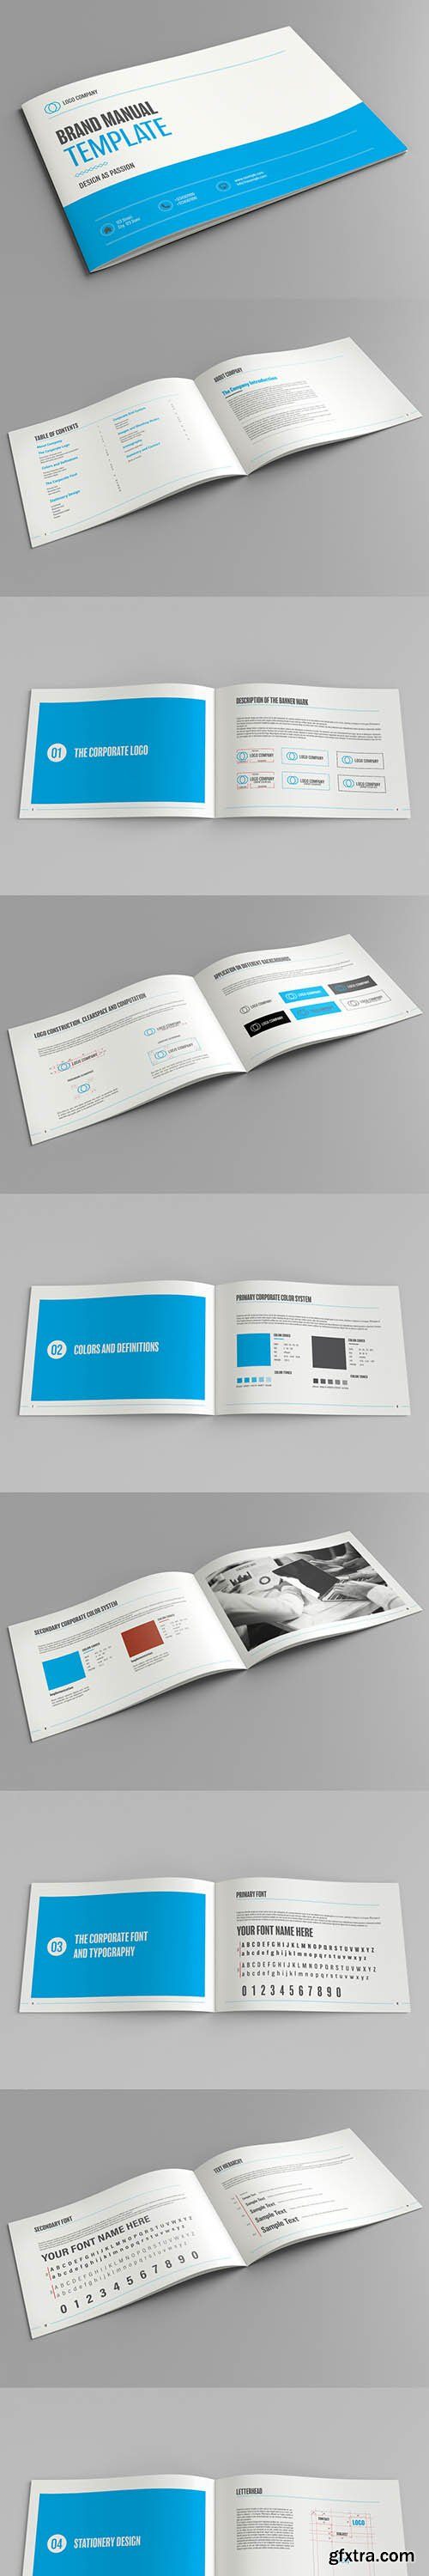 Brand Manual Layout with Blue Accents 185282615